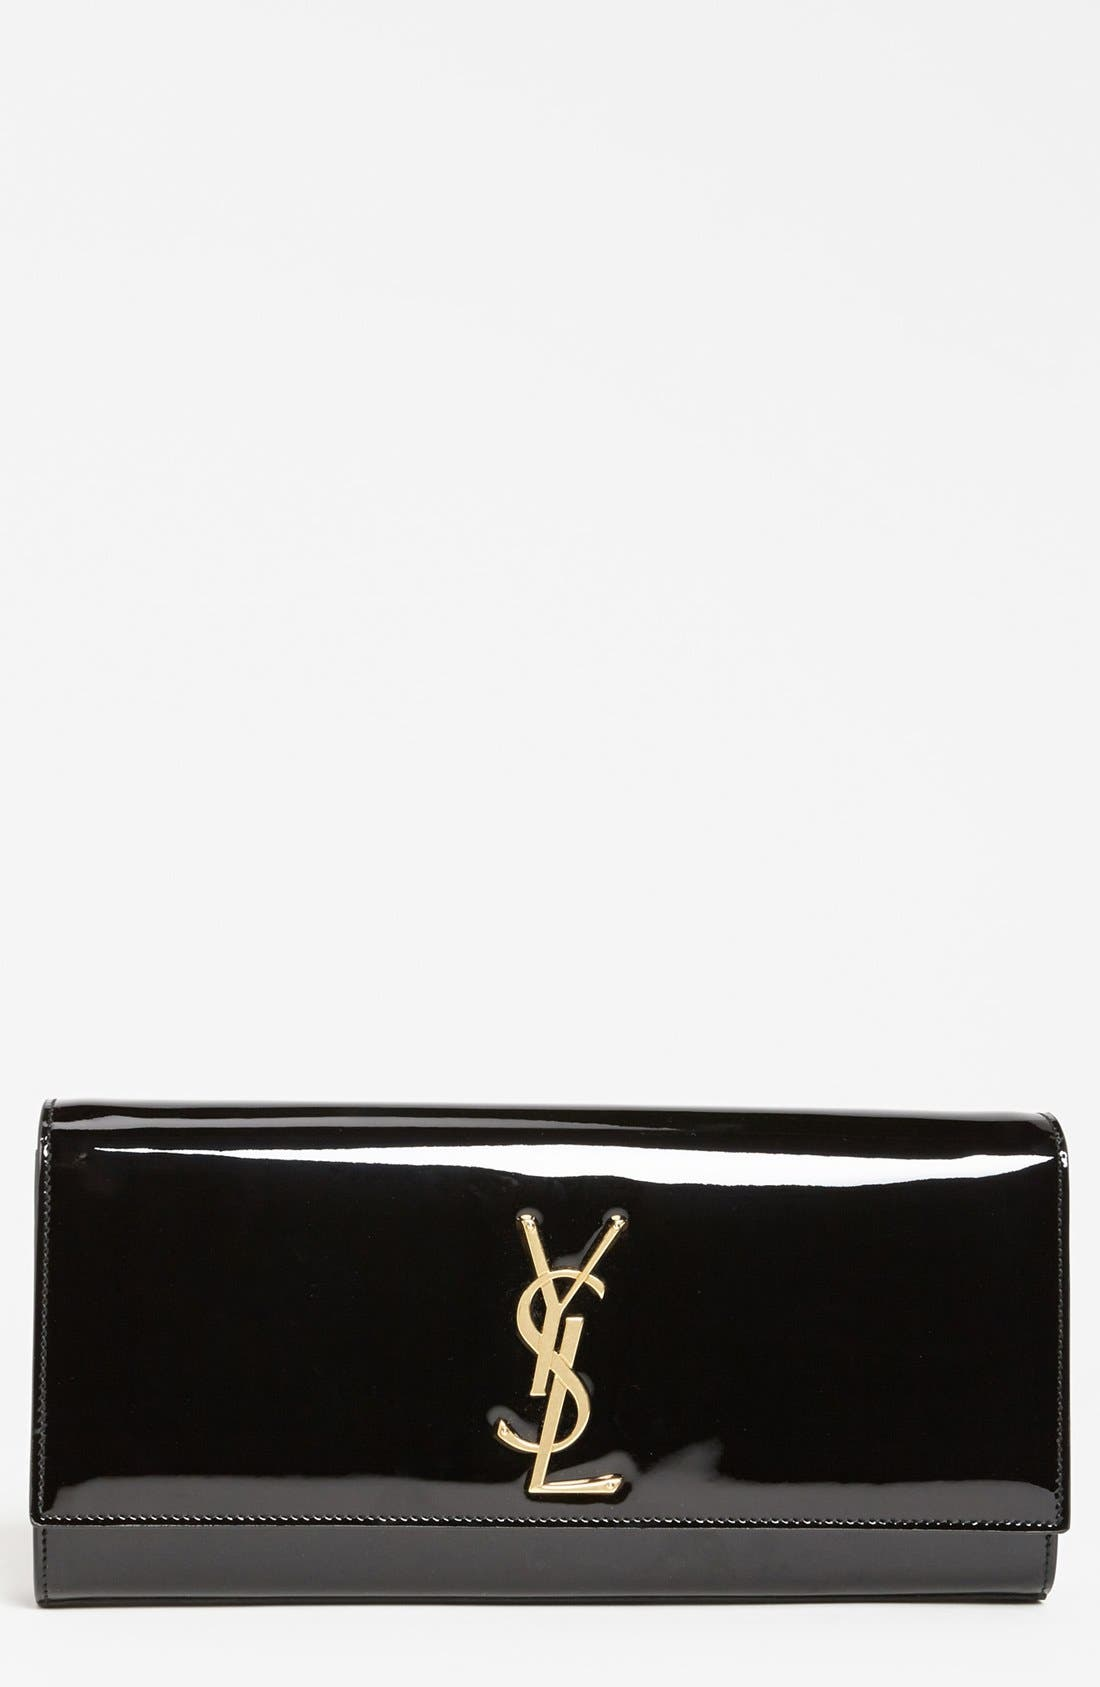 'Cassandre - Laque' Leather Clutch,                         Main,                         color, 001